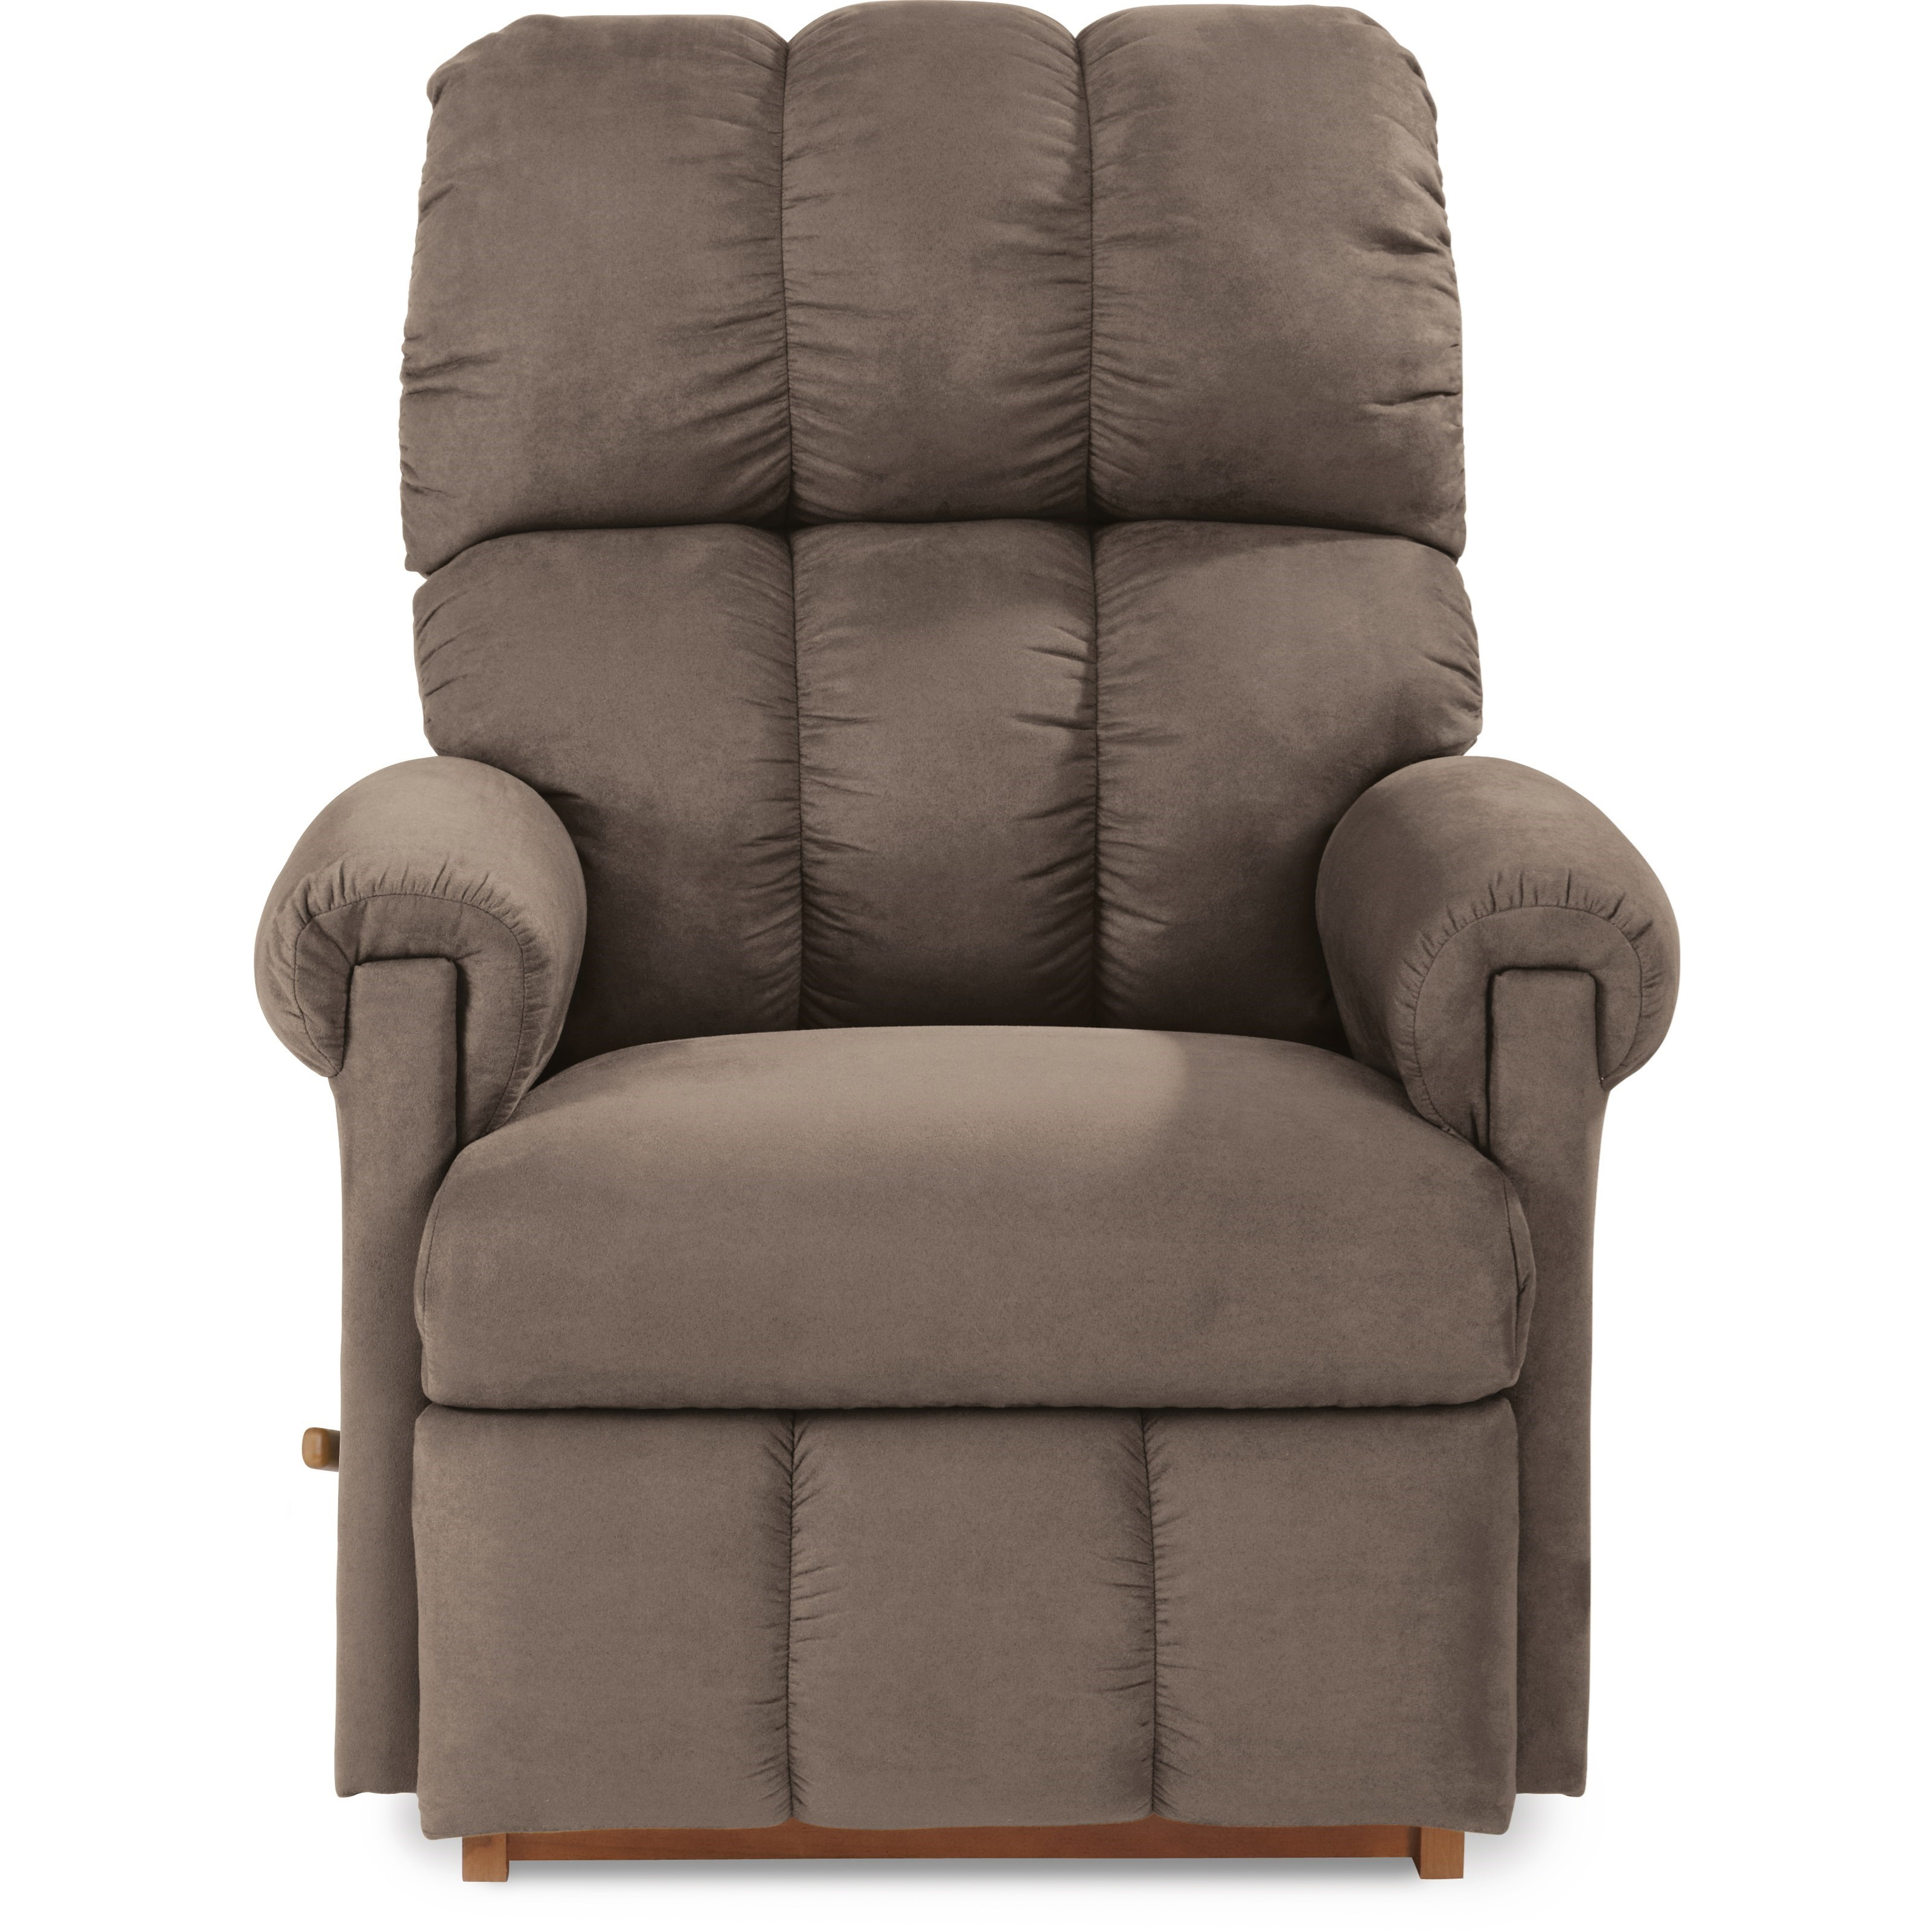 Recliners Vail Wall Recliner by La-Z-Boy at H.L. Stephens